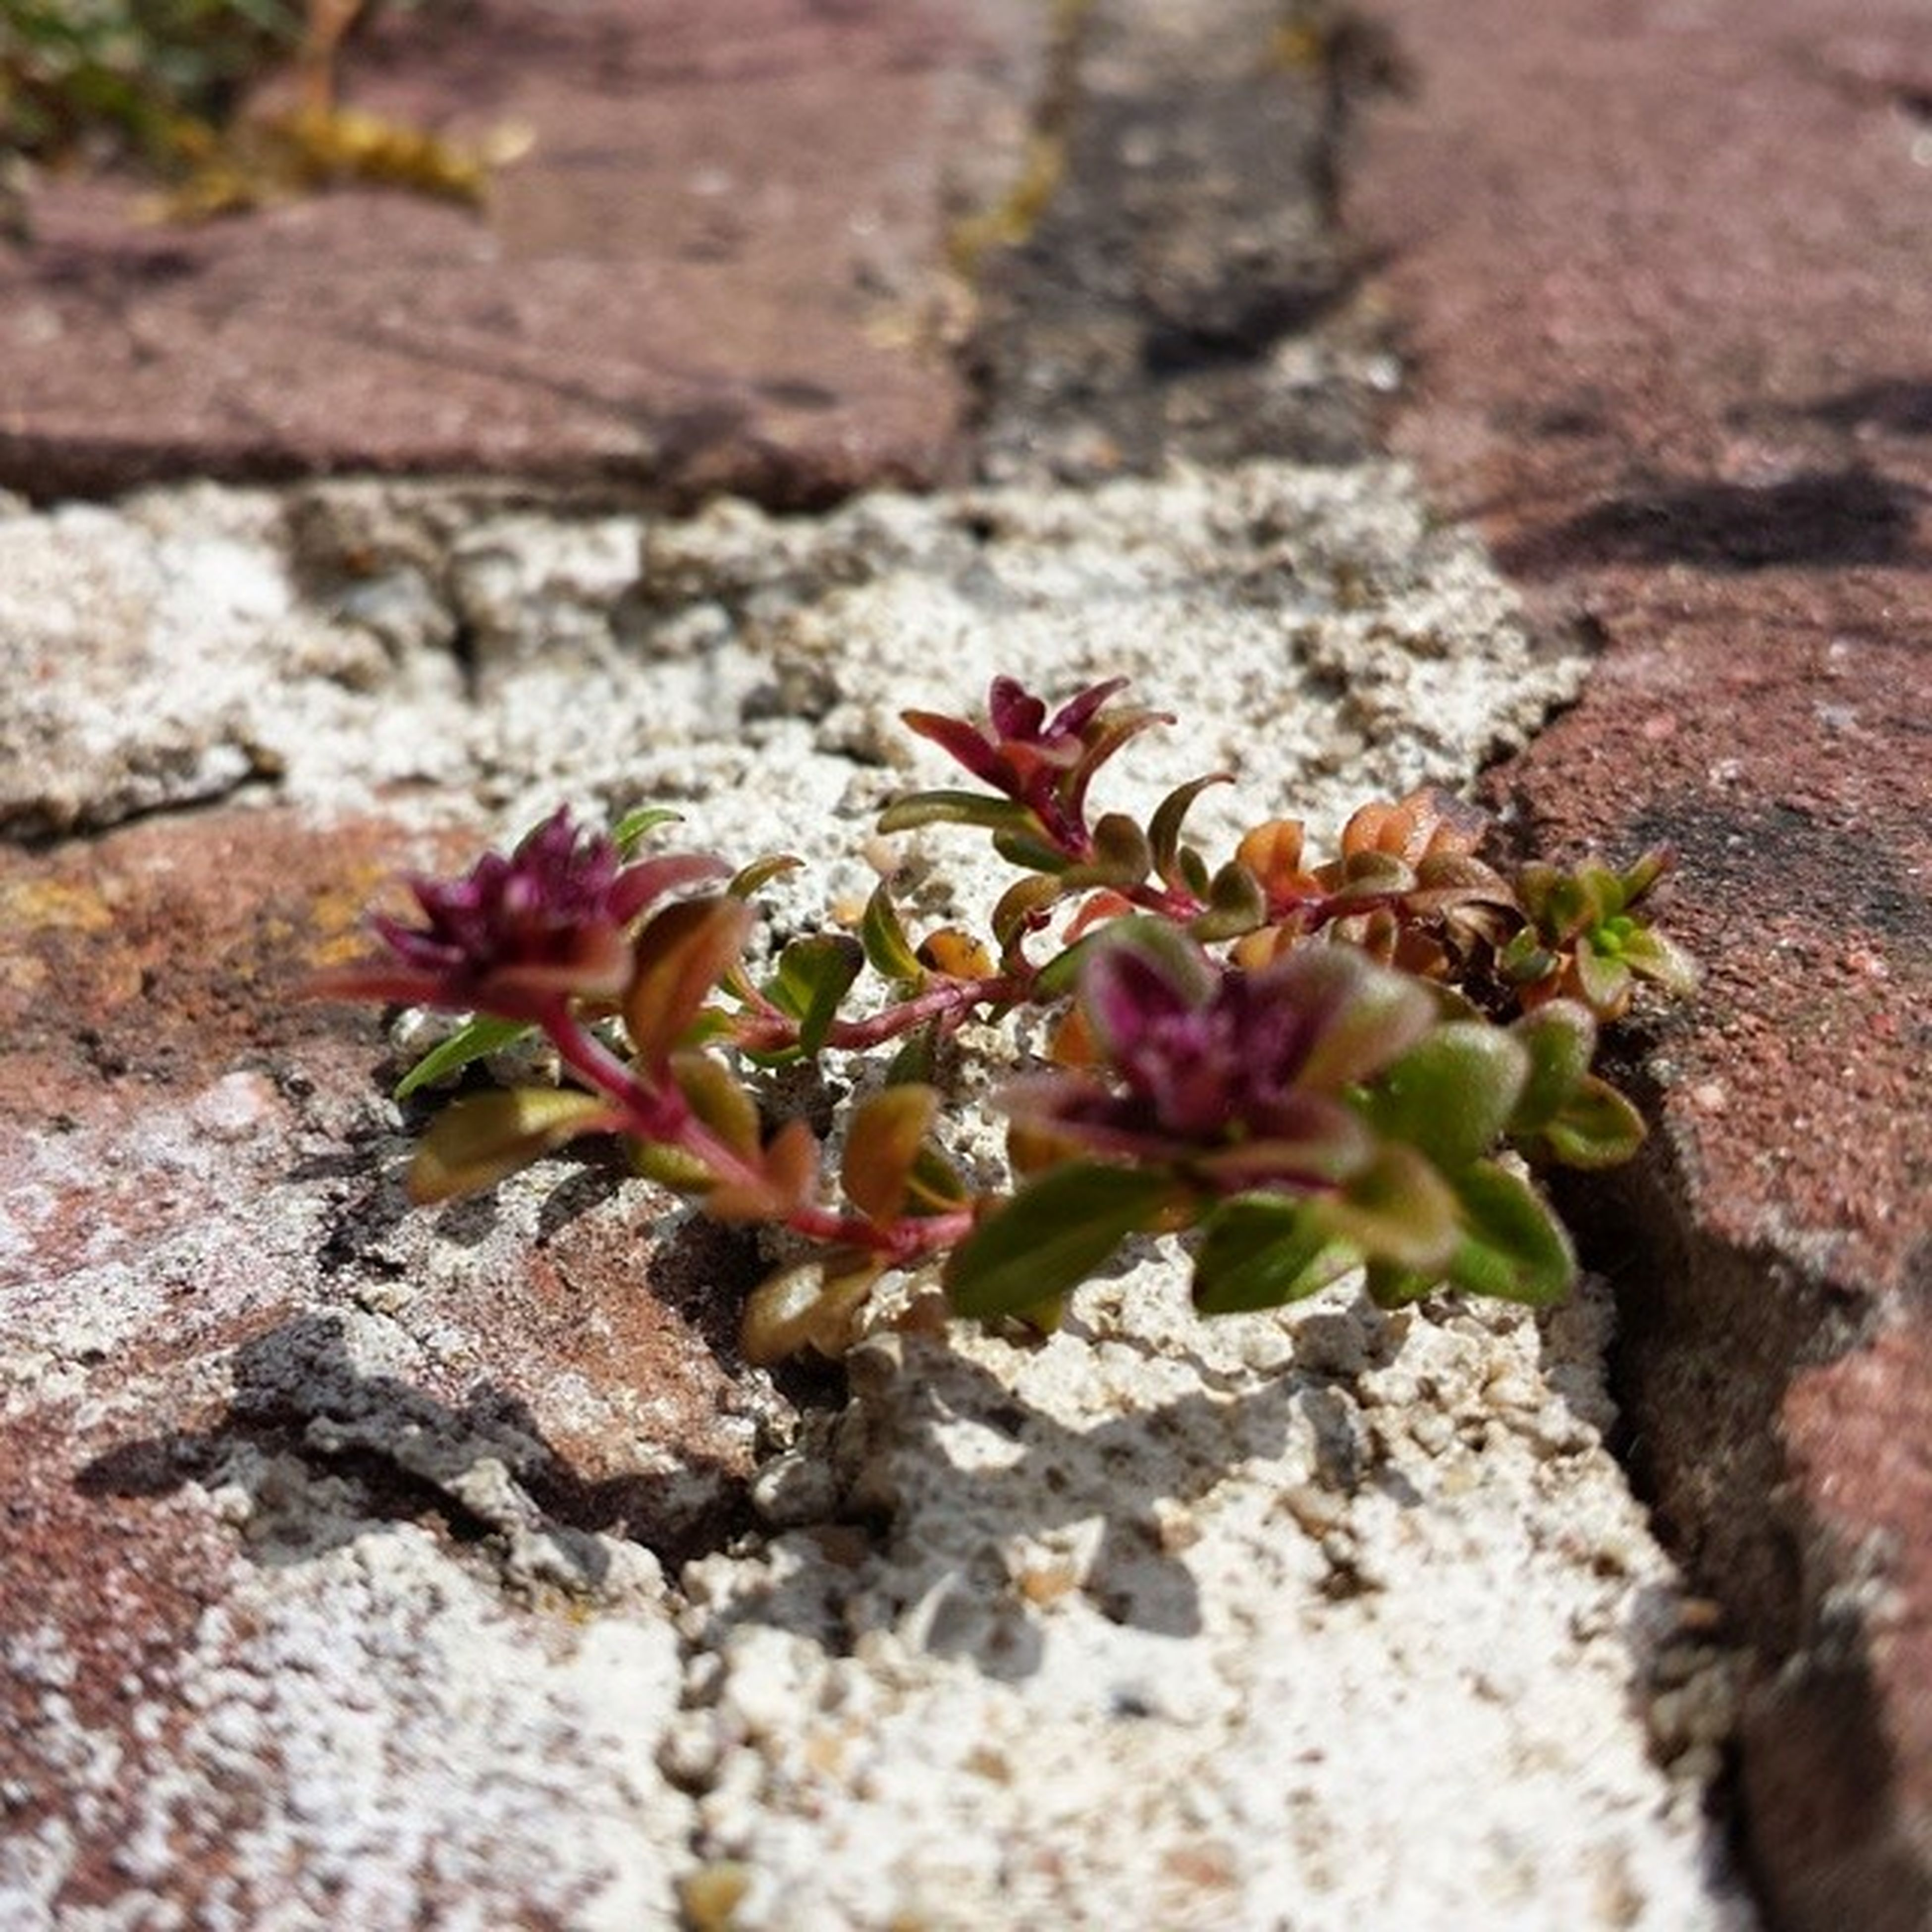 growth, plant, flower, rock - object, close-up, nature, selective focus, fragility, rock, growing, leaf, beauty in nature, textured, day, outdoors, high angle view, freshness, no people, focus on foreground, stone - object